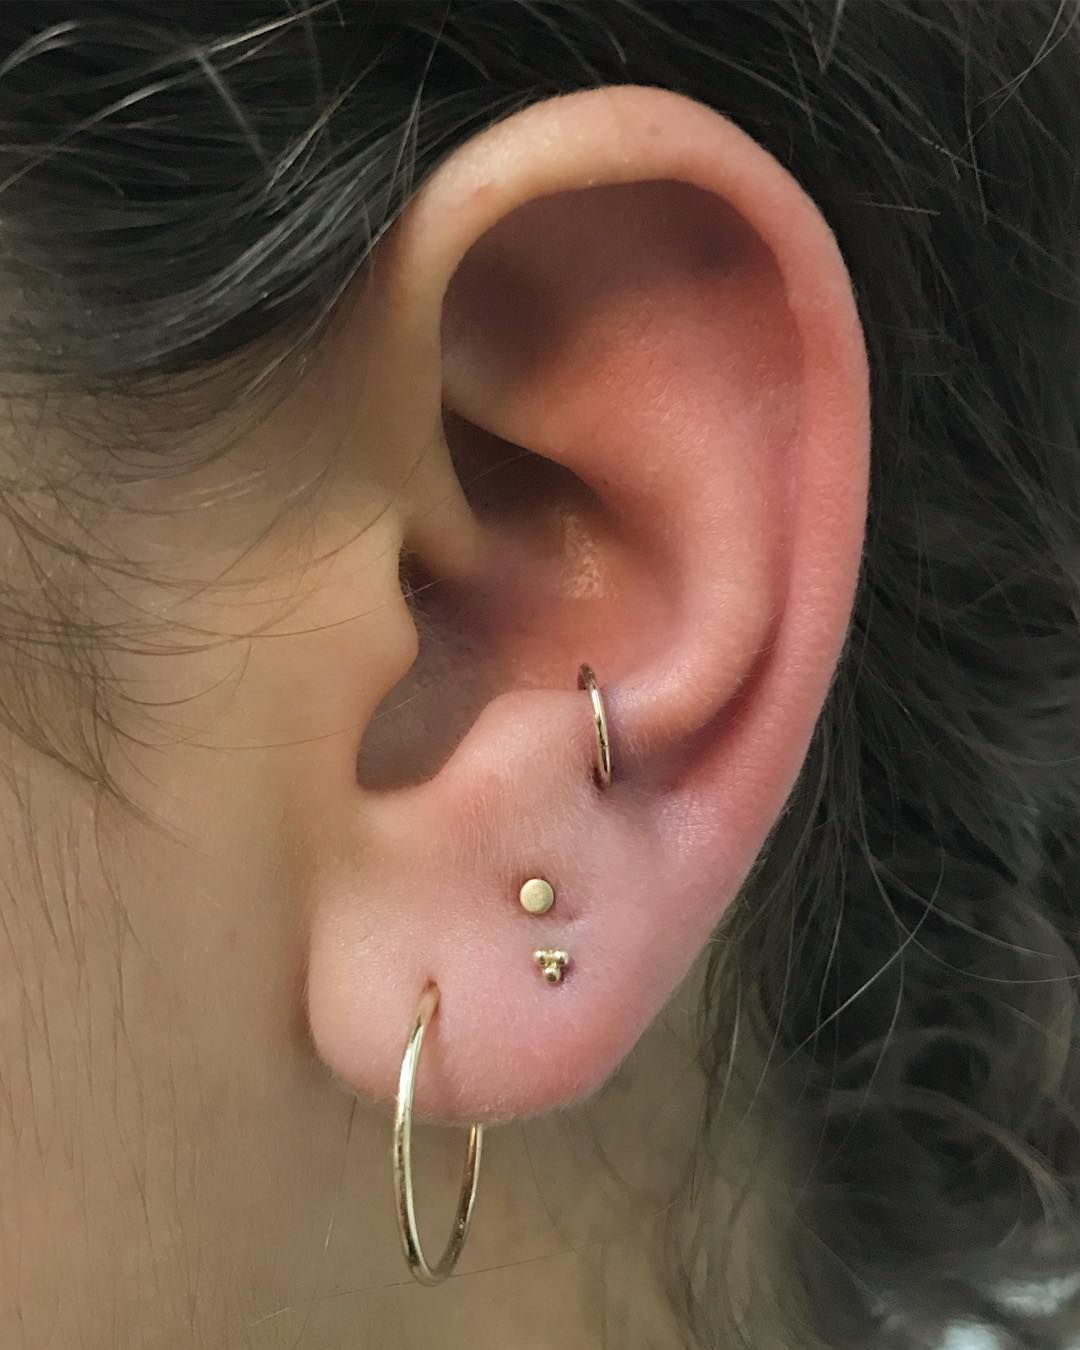 High nose piercing  Pin by Abby Van Wye on fashion  Pinterest  Piercings Trust and